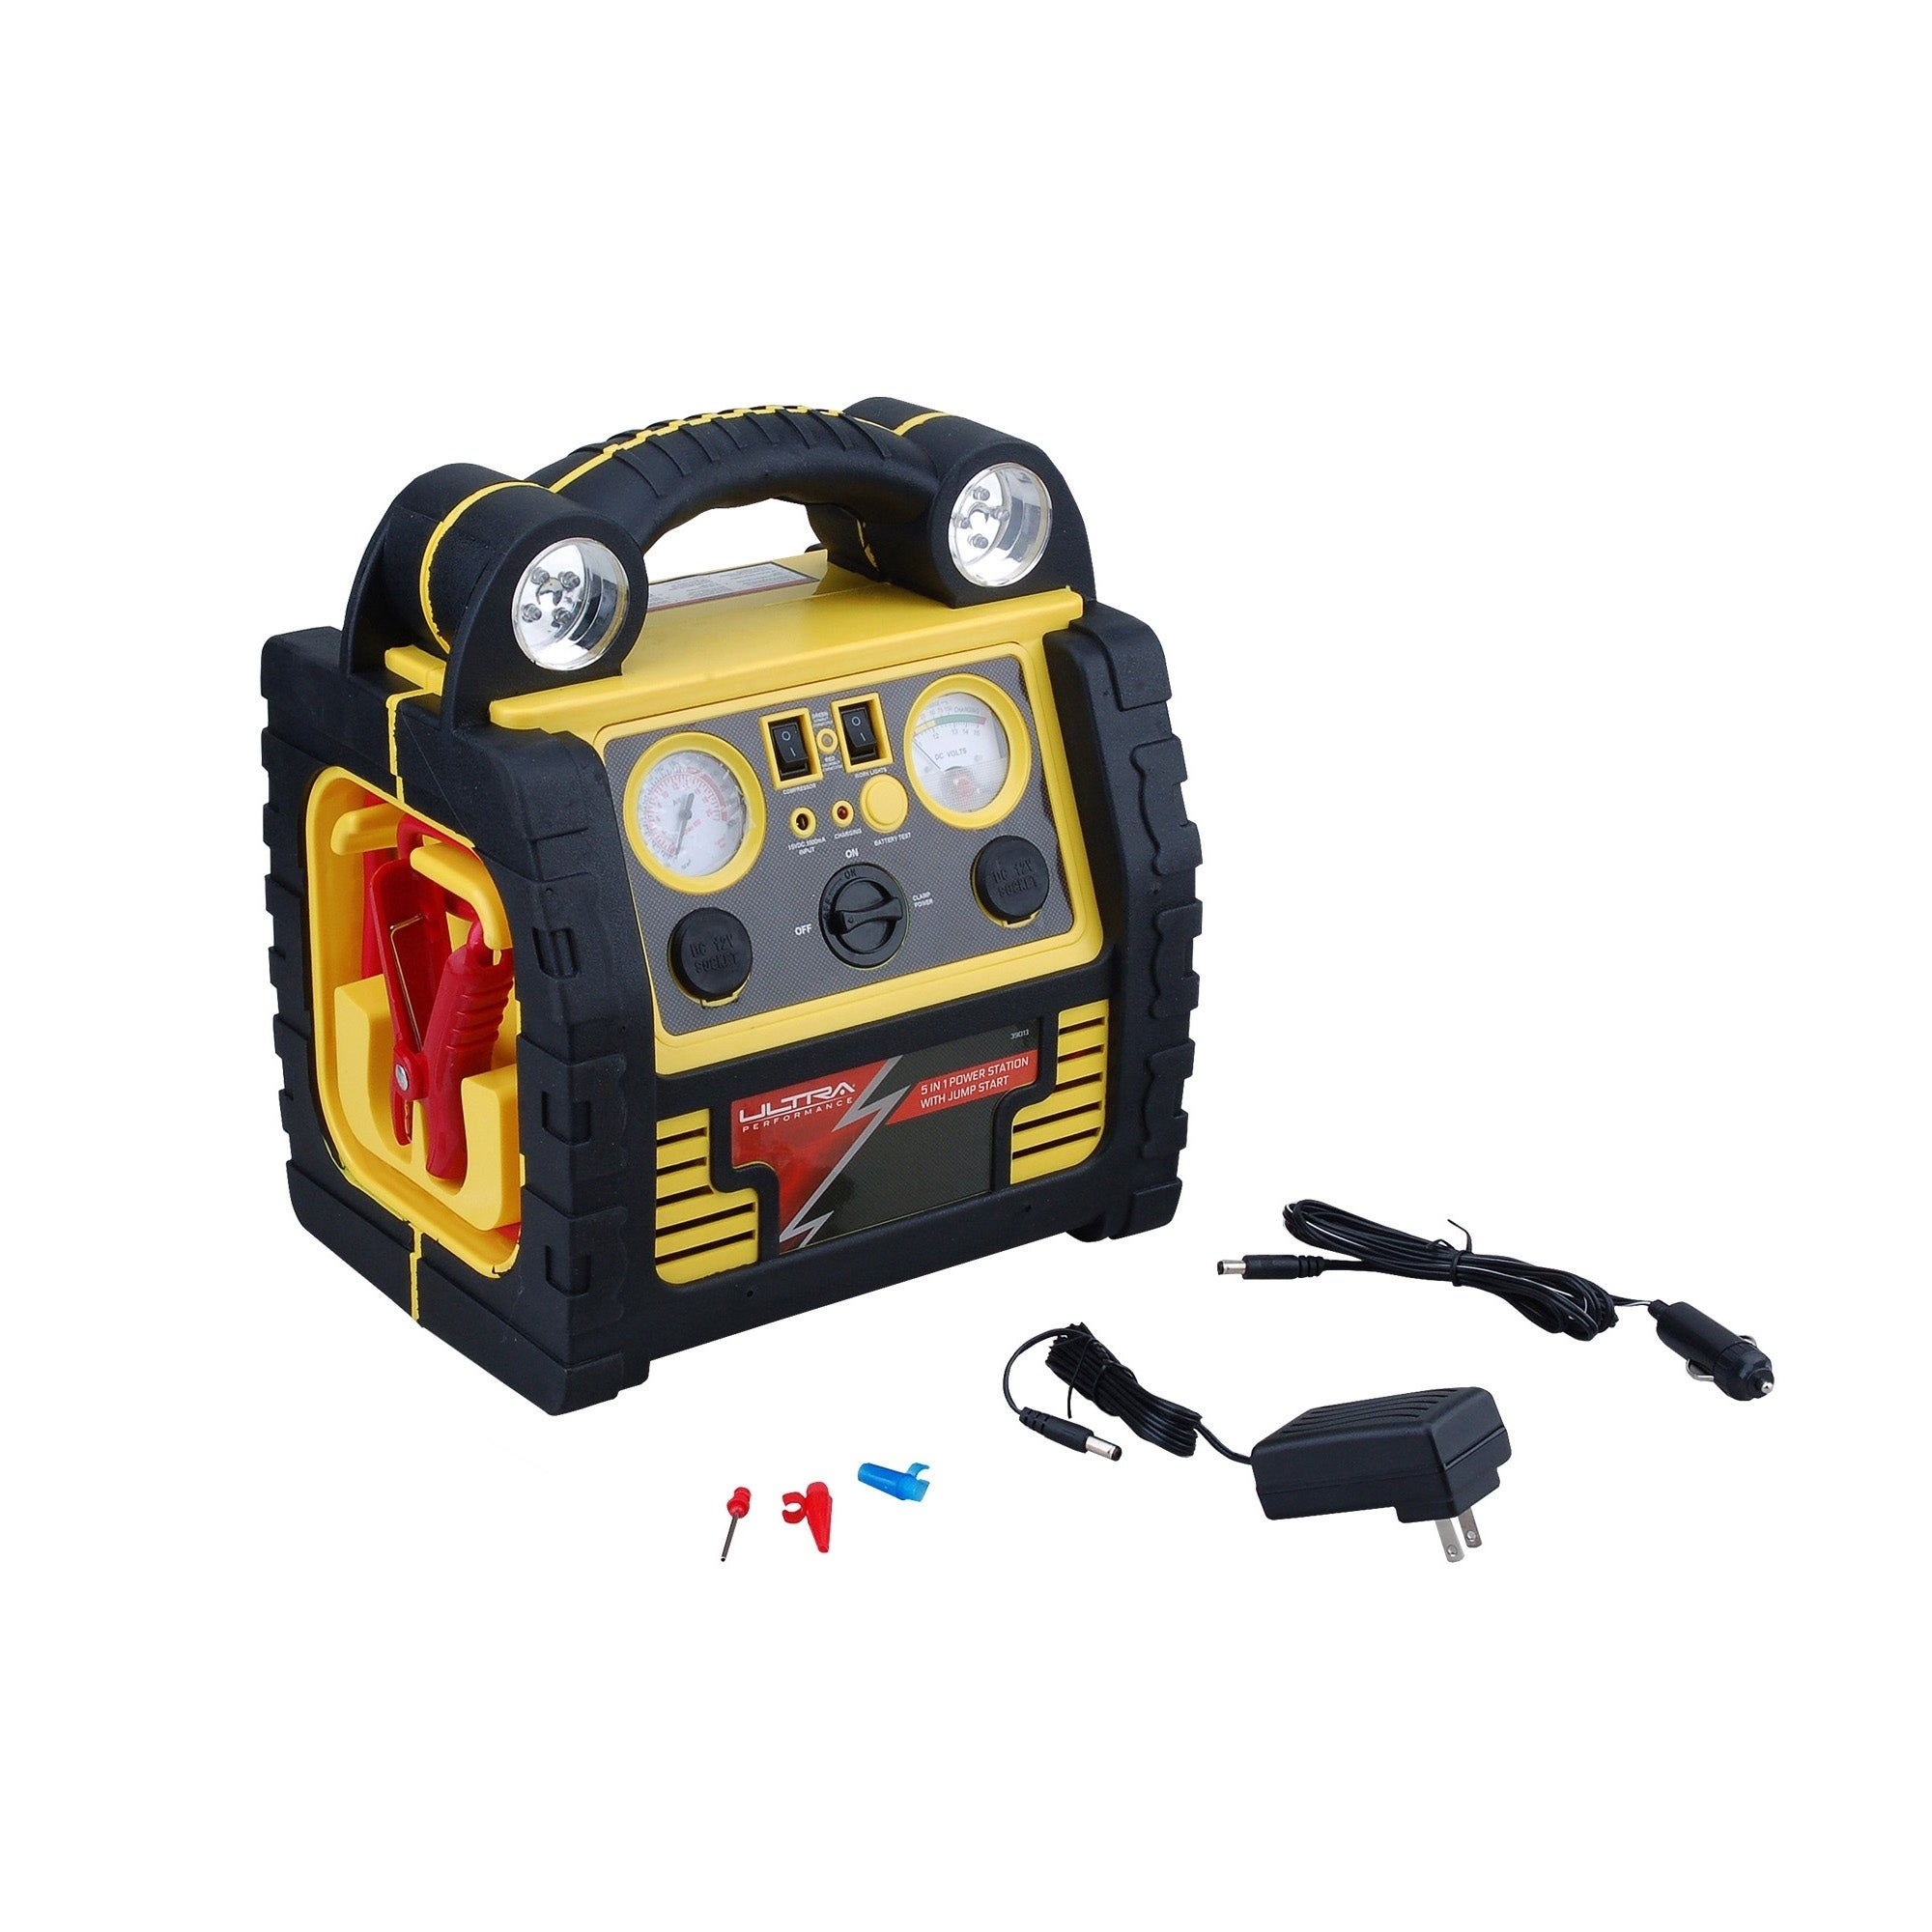 Ultra Performance 5 in 1 Power Station with Jump Start, C...